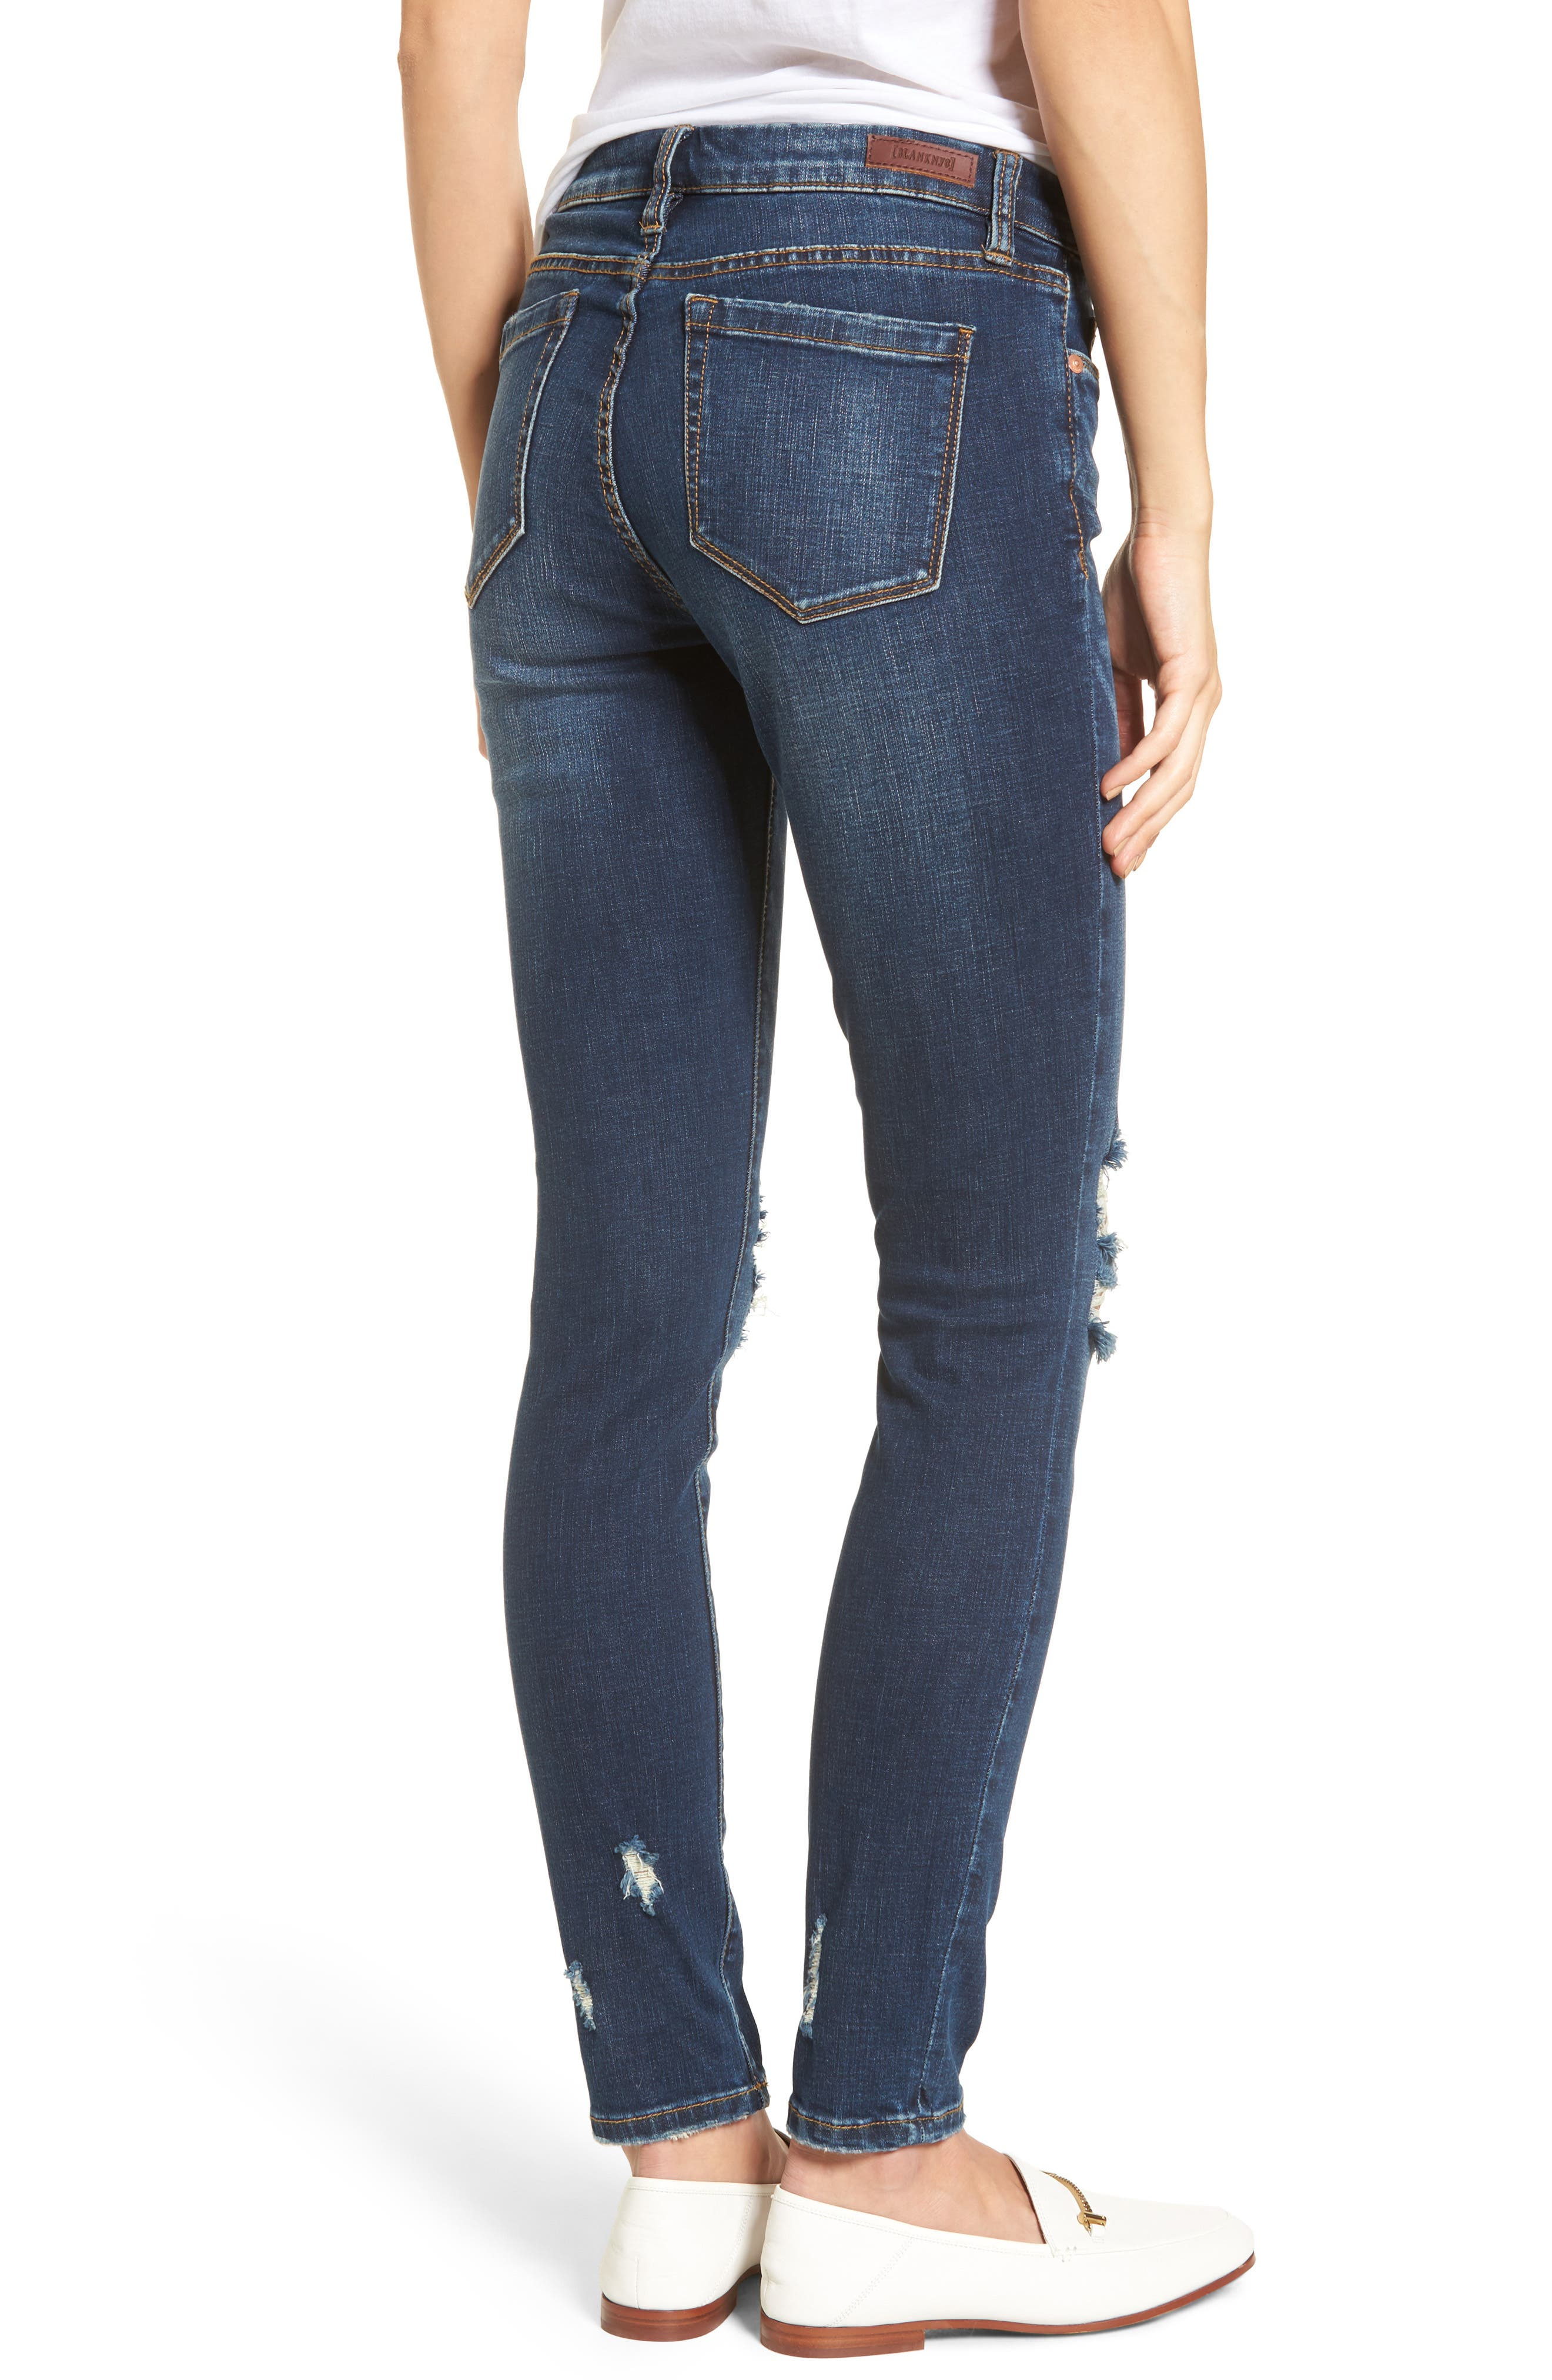 Decon Cult Classic Skinny Jeans,                             Alternate thumbnail 2, color,                             400